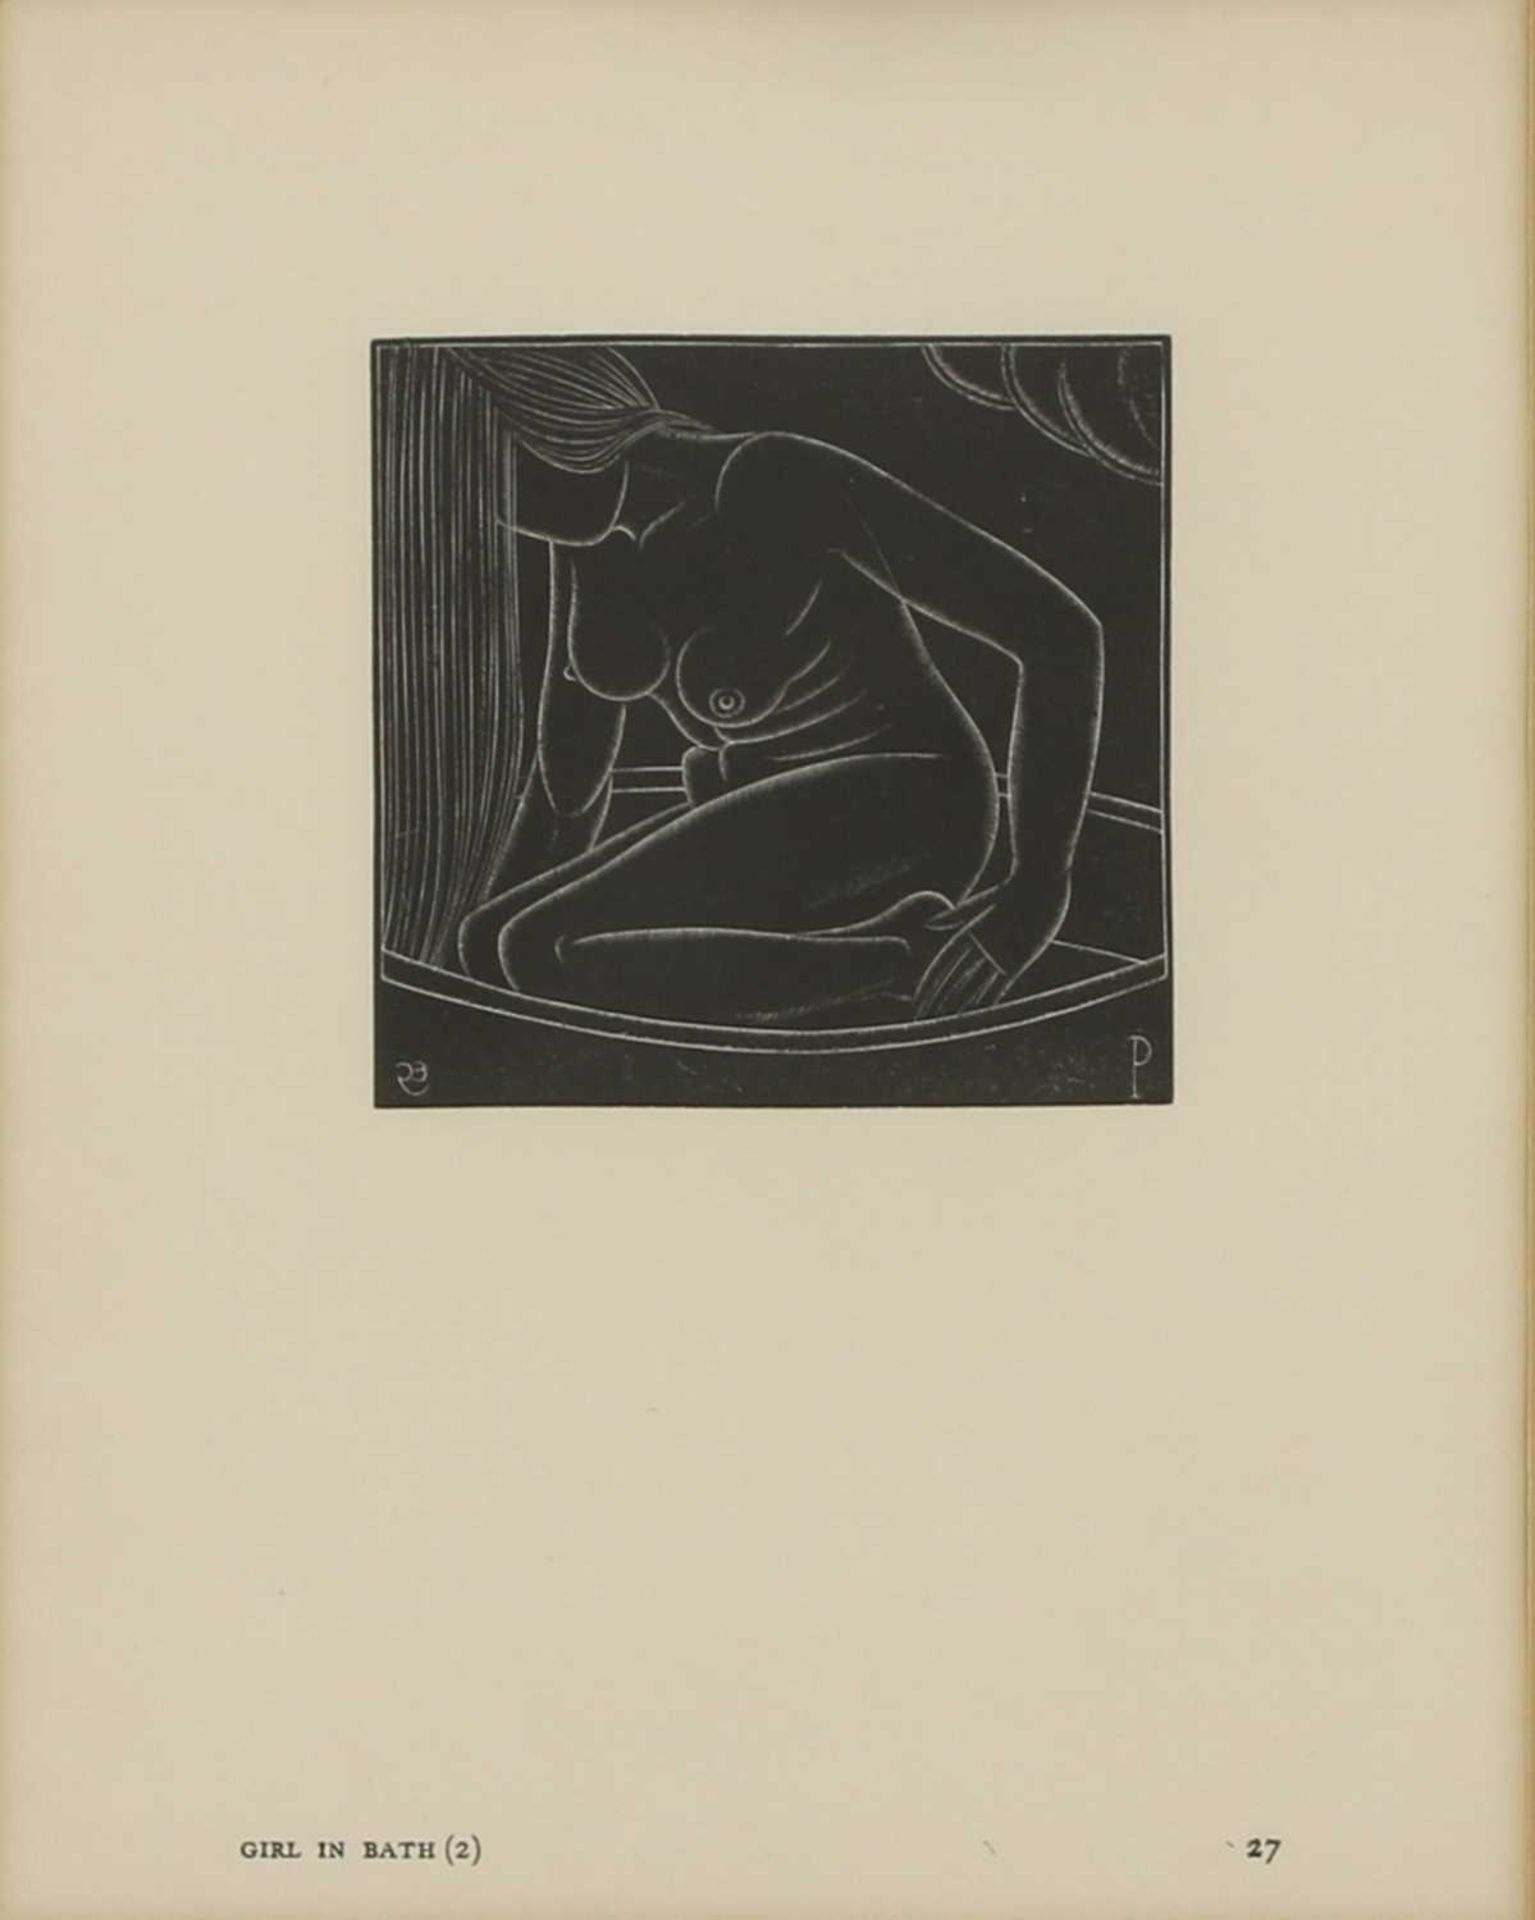 Eric Gill (1882-1940) - Image 3 of 4